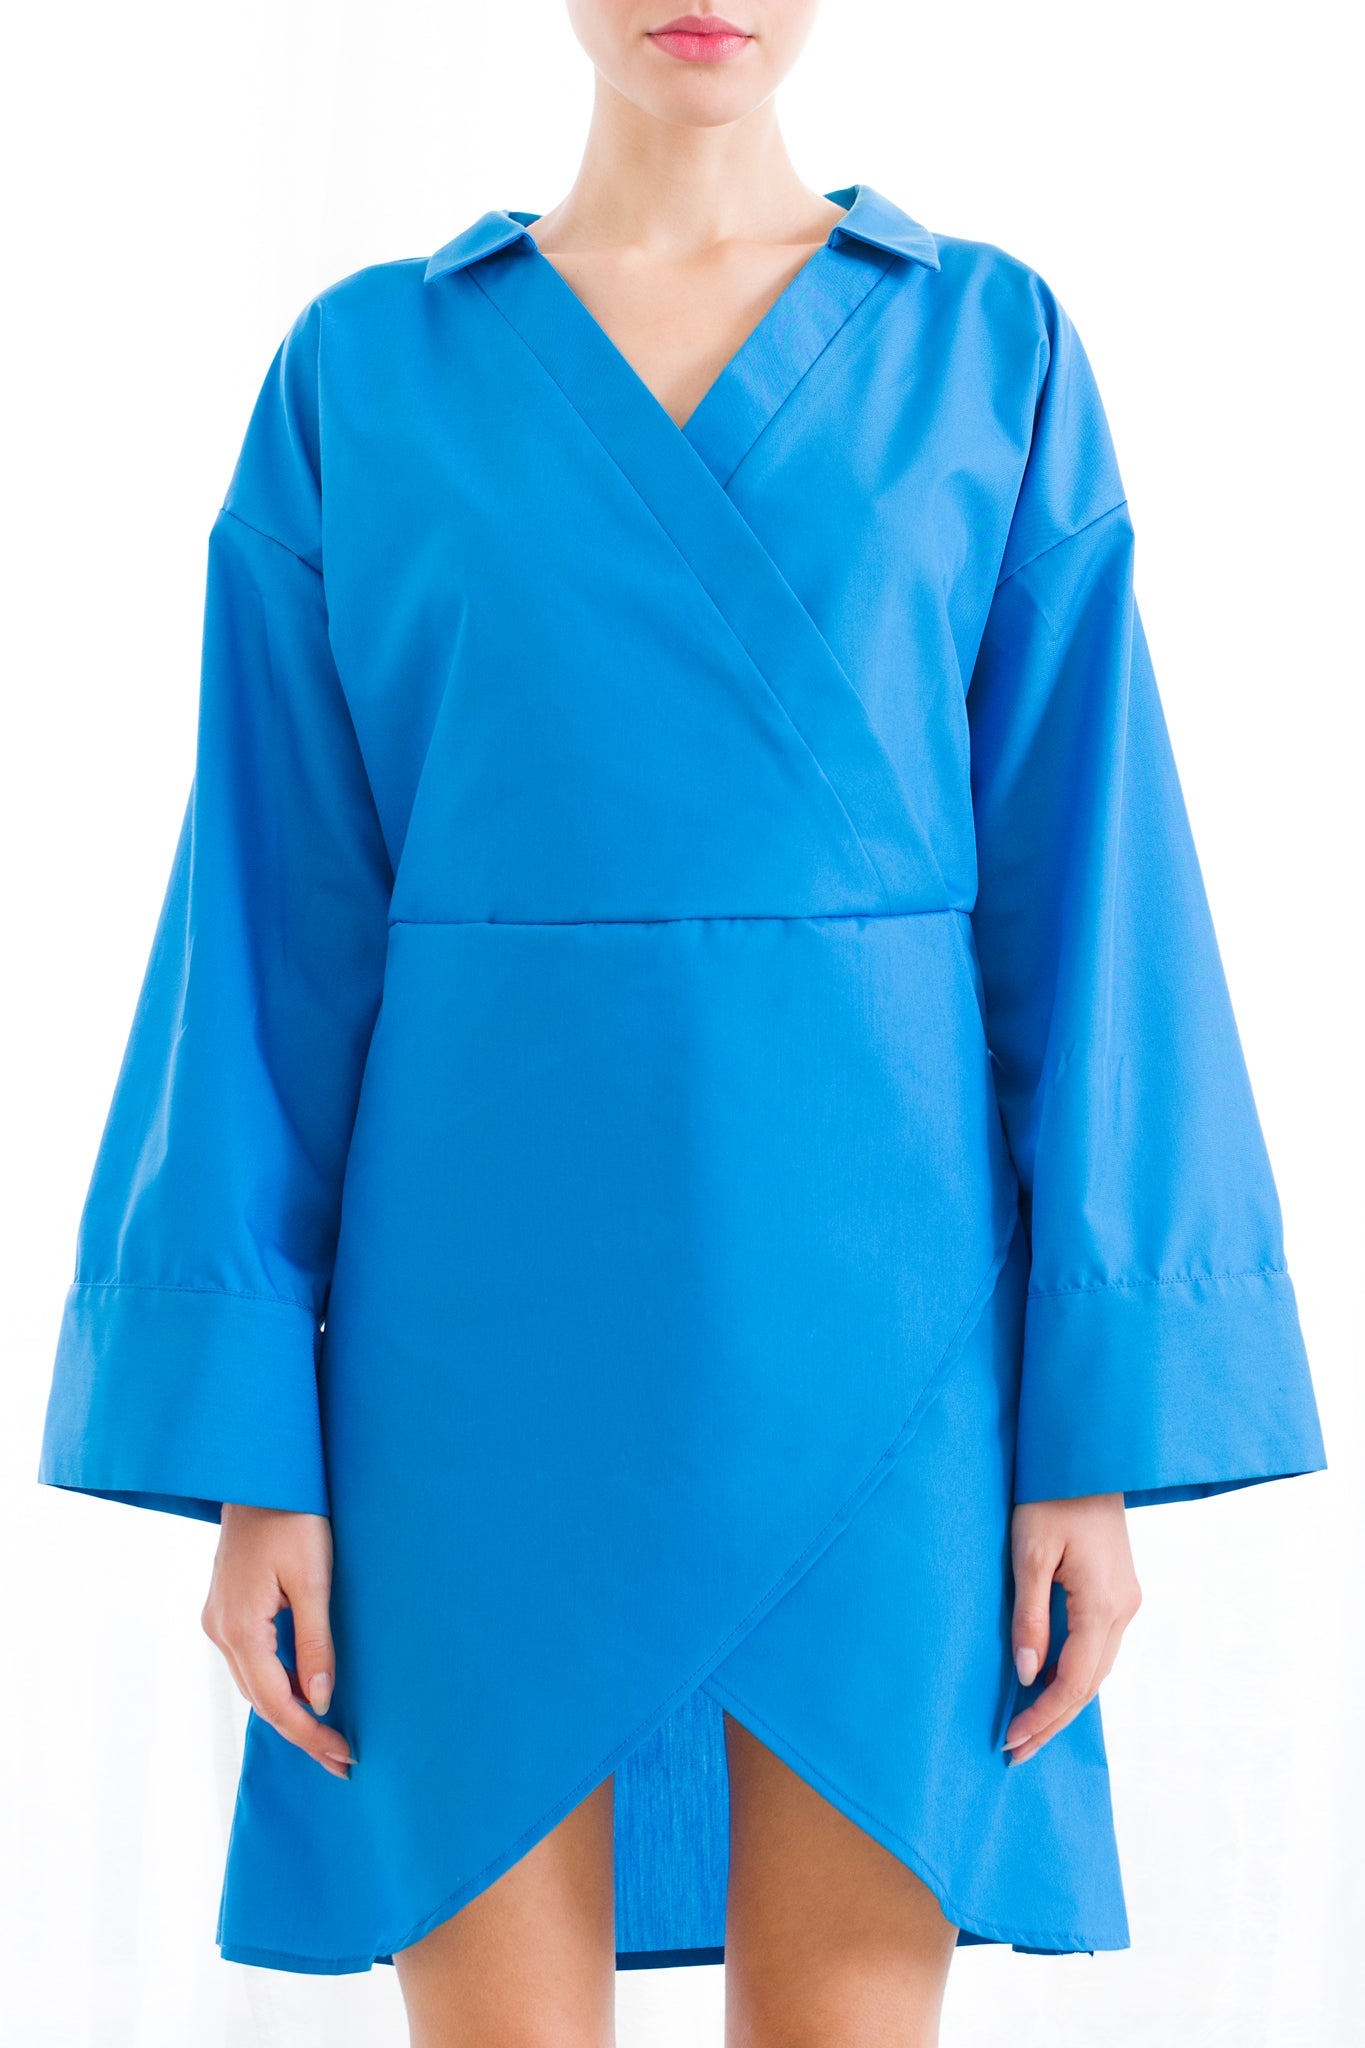 Yukata Dress (Ocean Blue)